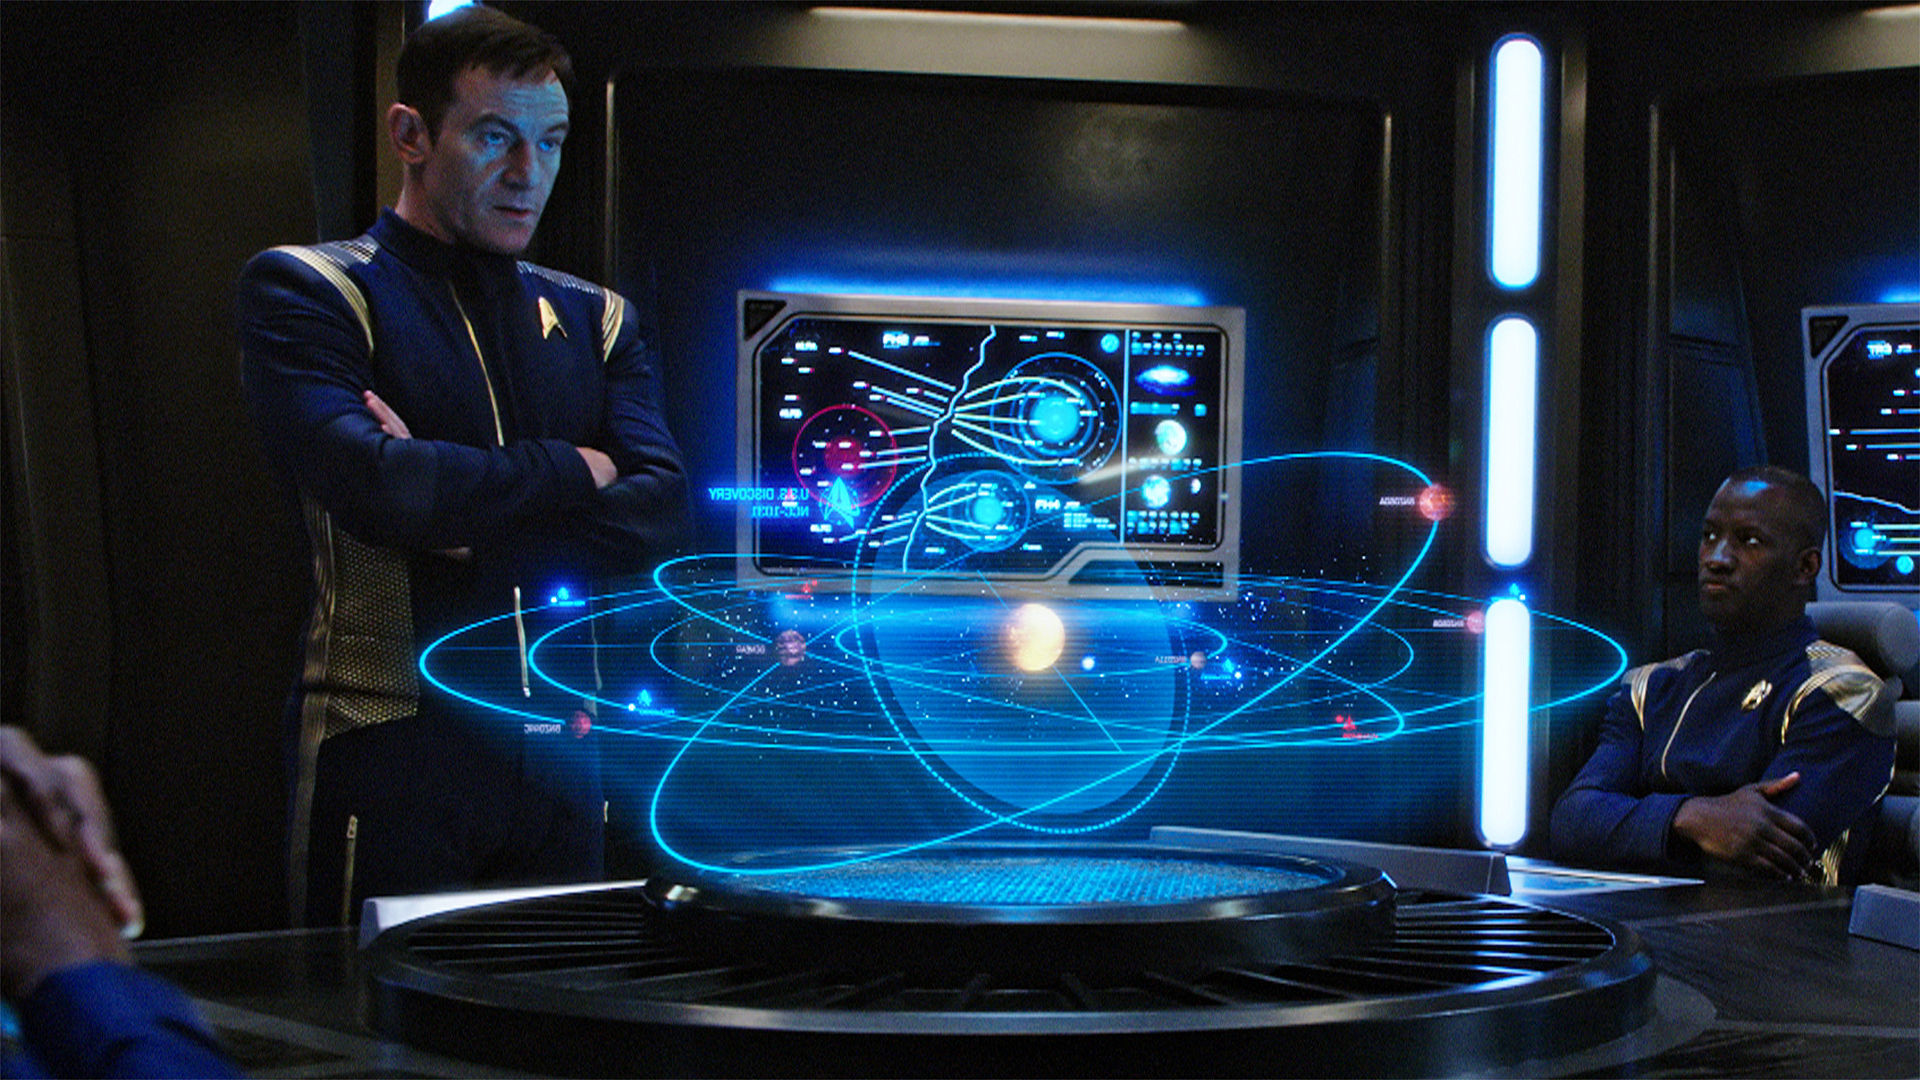 CBS_STARTREK_DISCOVERY_105_HD_IMAGE_1920x1080_copy_thumb_Master